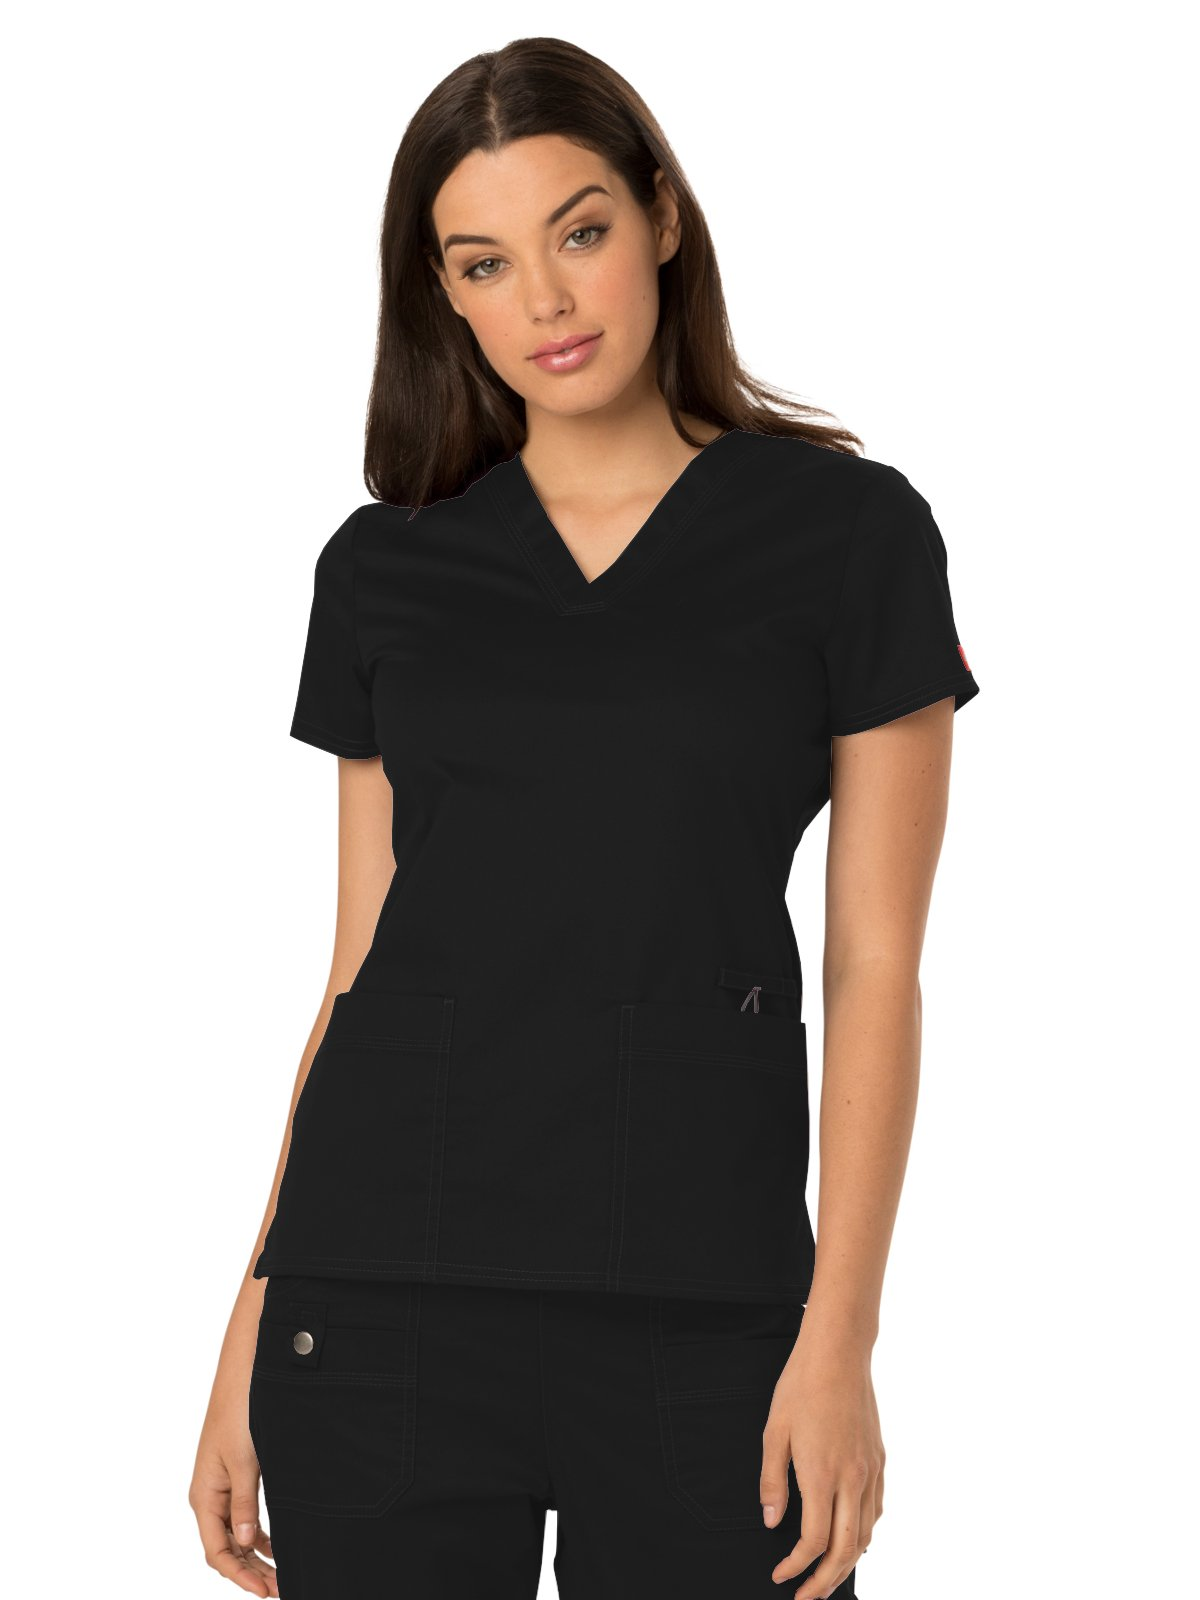 Dickies Gen Flex Women's V-Neck Solid Scrub Top Small Black by Dickies (Image #1)